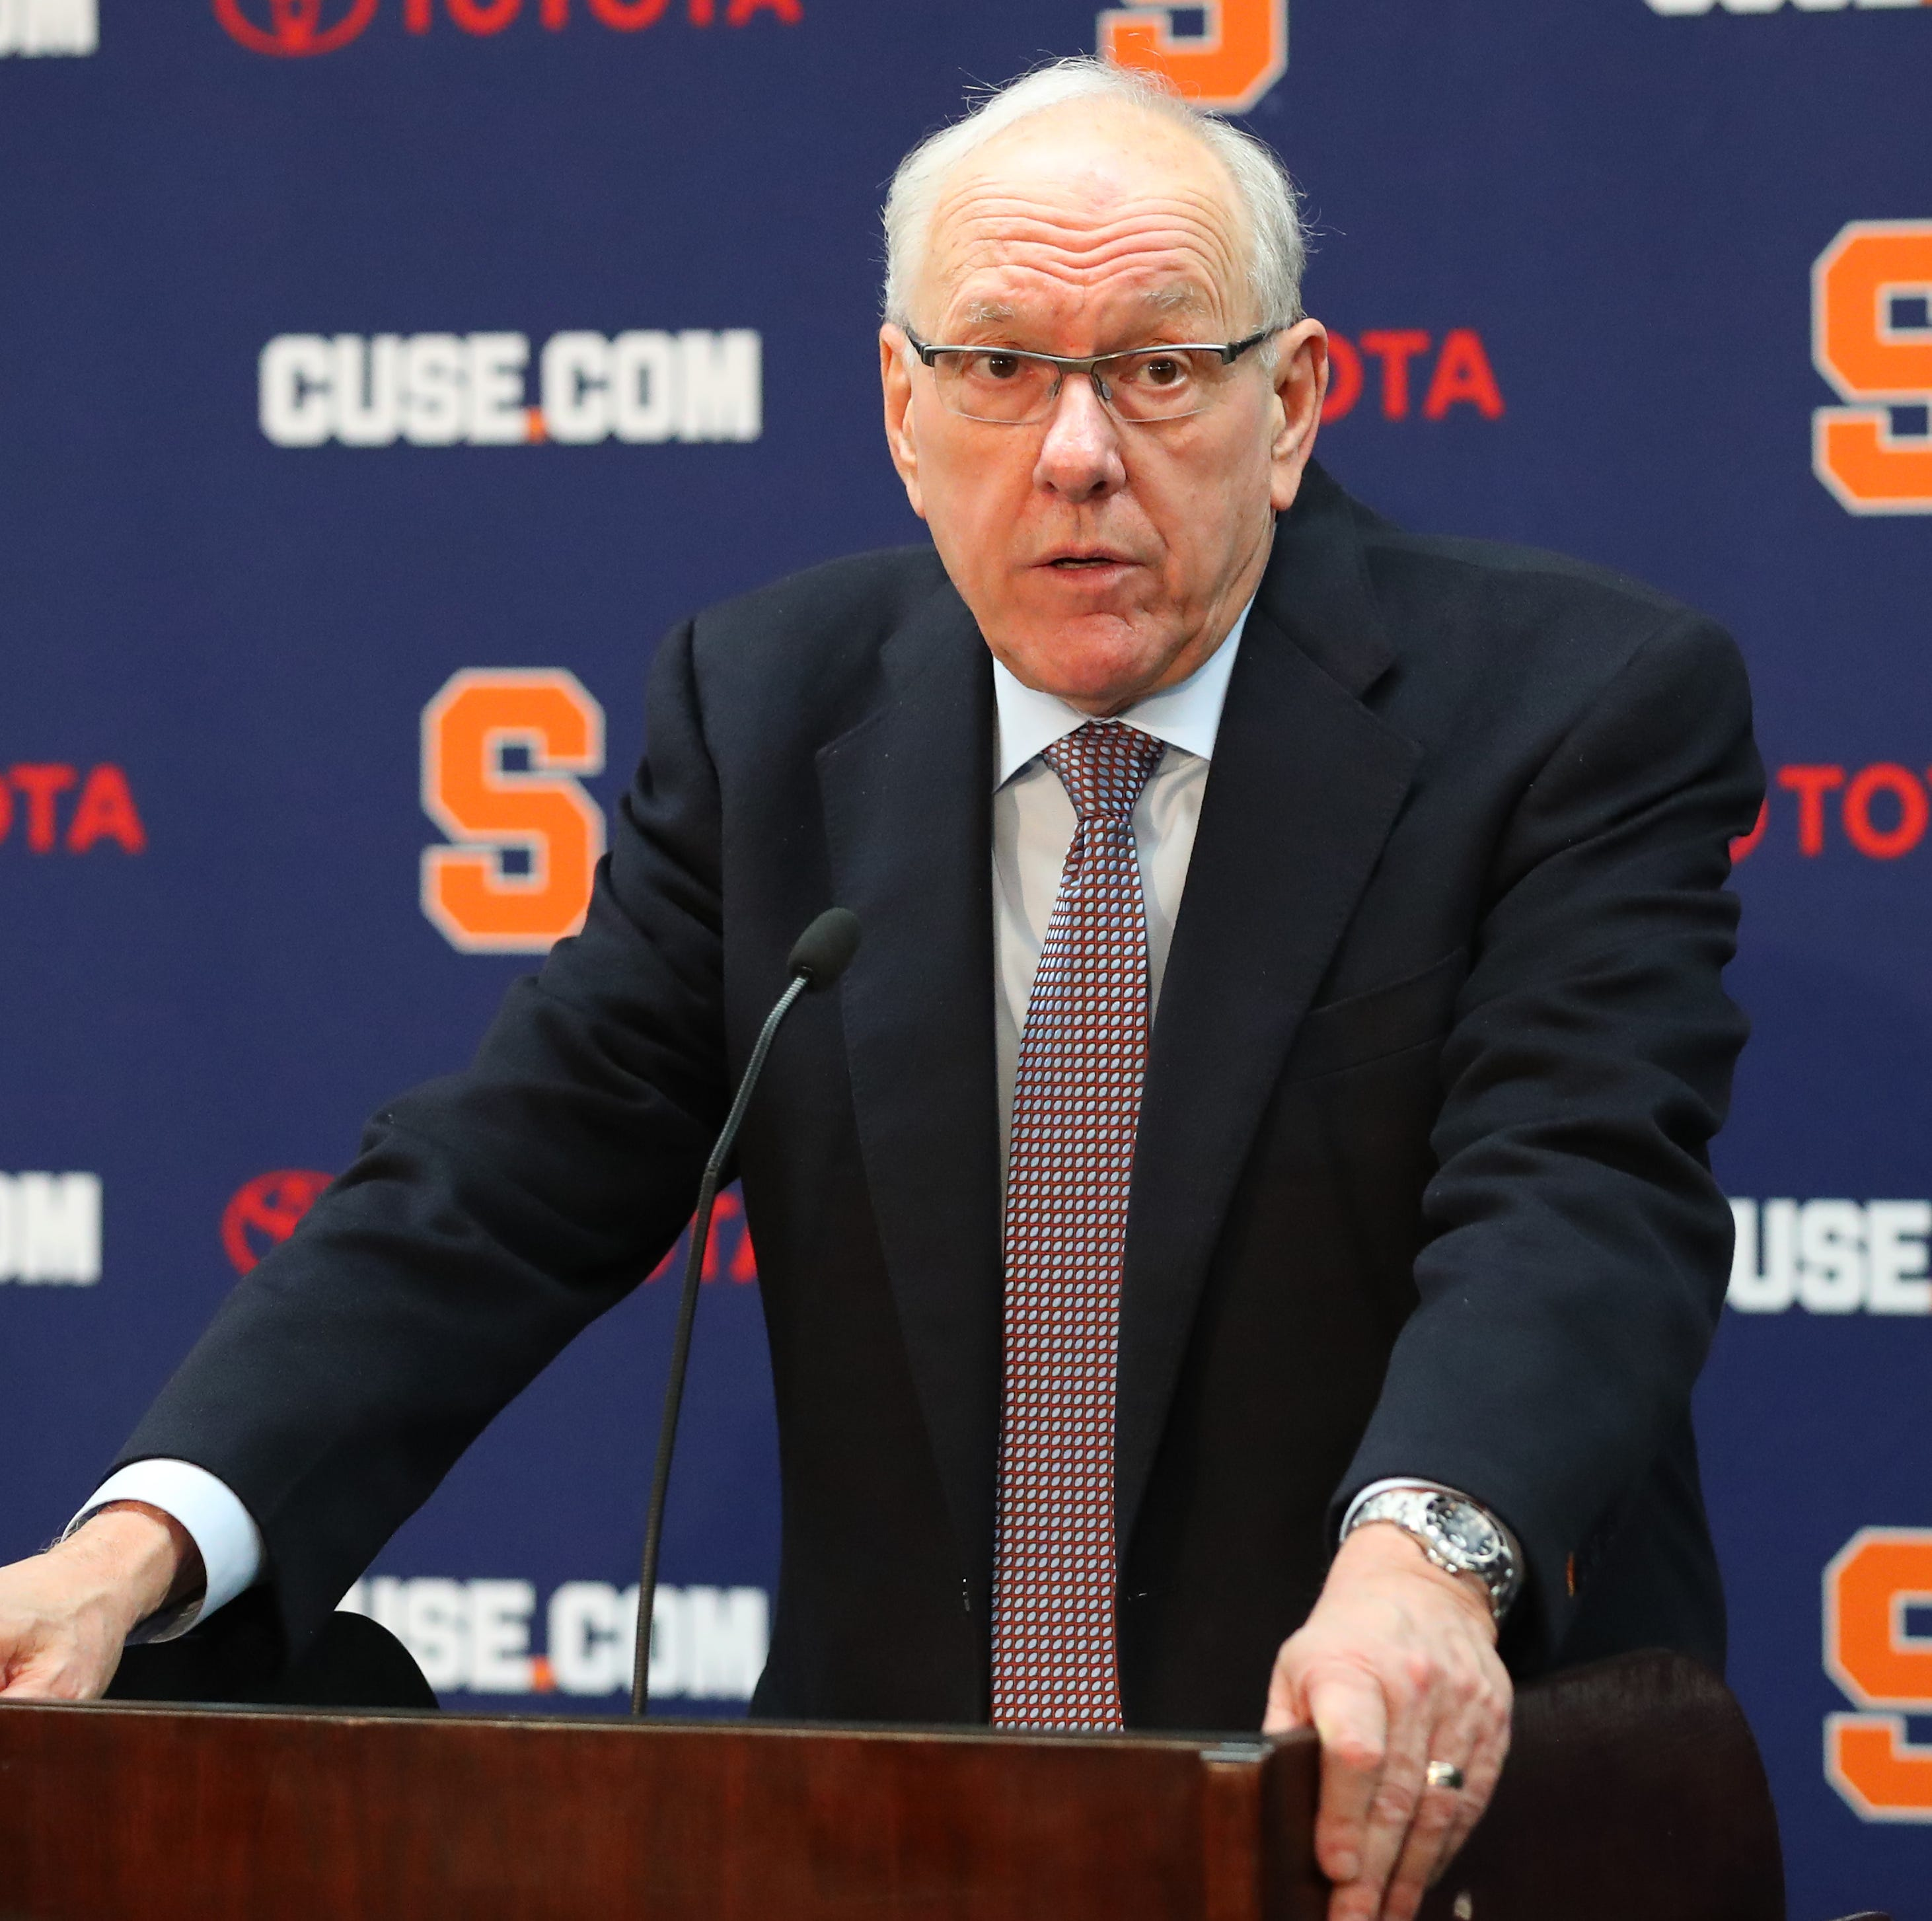 Syracuse coach Jim Boeheim cleared of wrongdoing in fatal accident